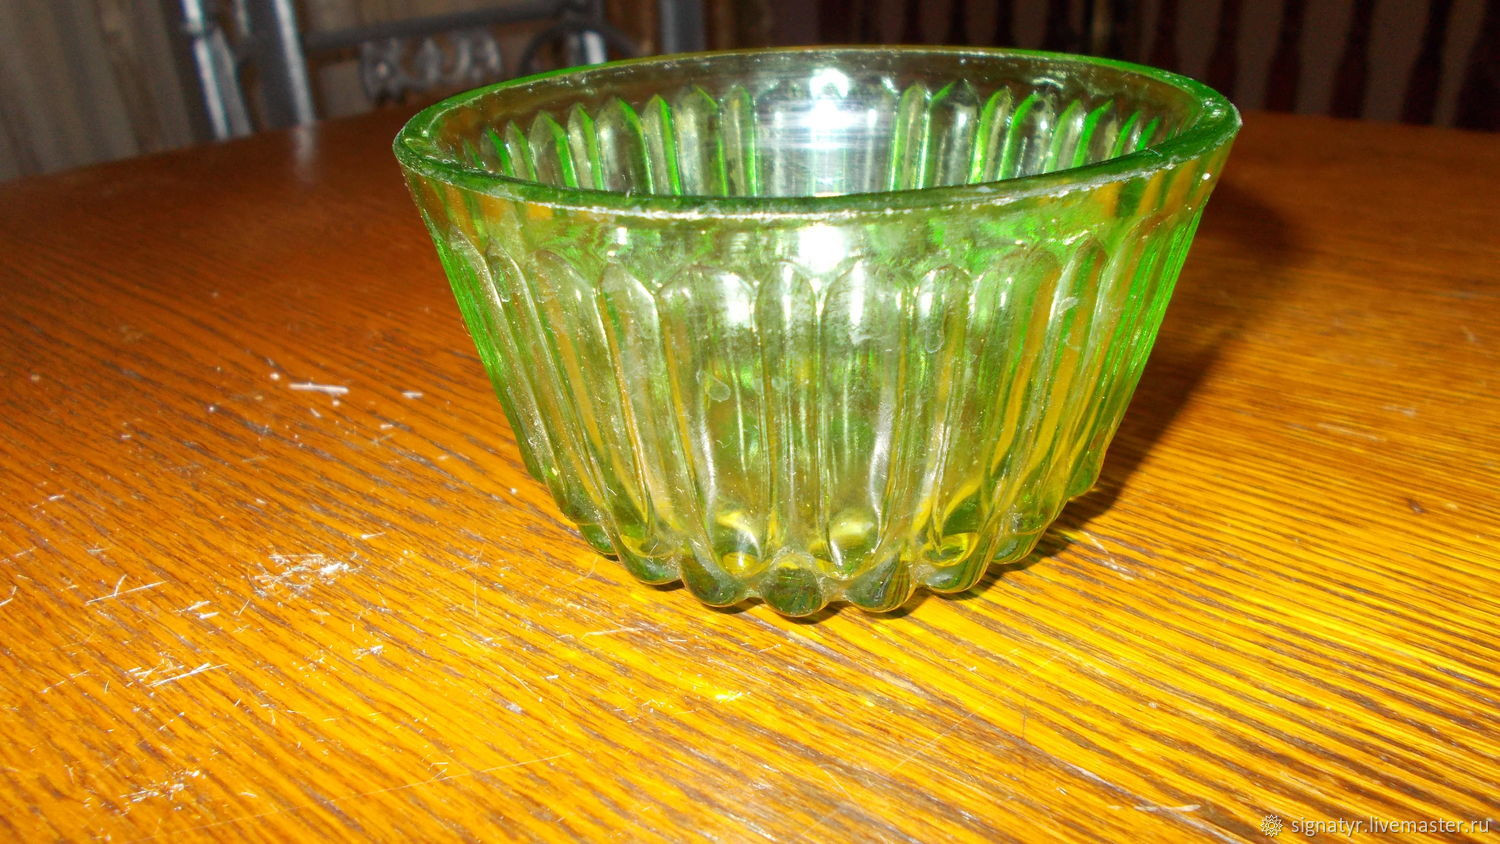 antique glass vases for sale of vase green glass vintage shop online on livemaster with shipping inside vintage kitchenware livemaster handmade buy vase green glass vintage